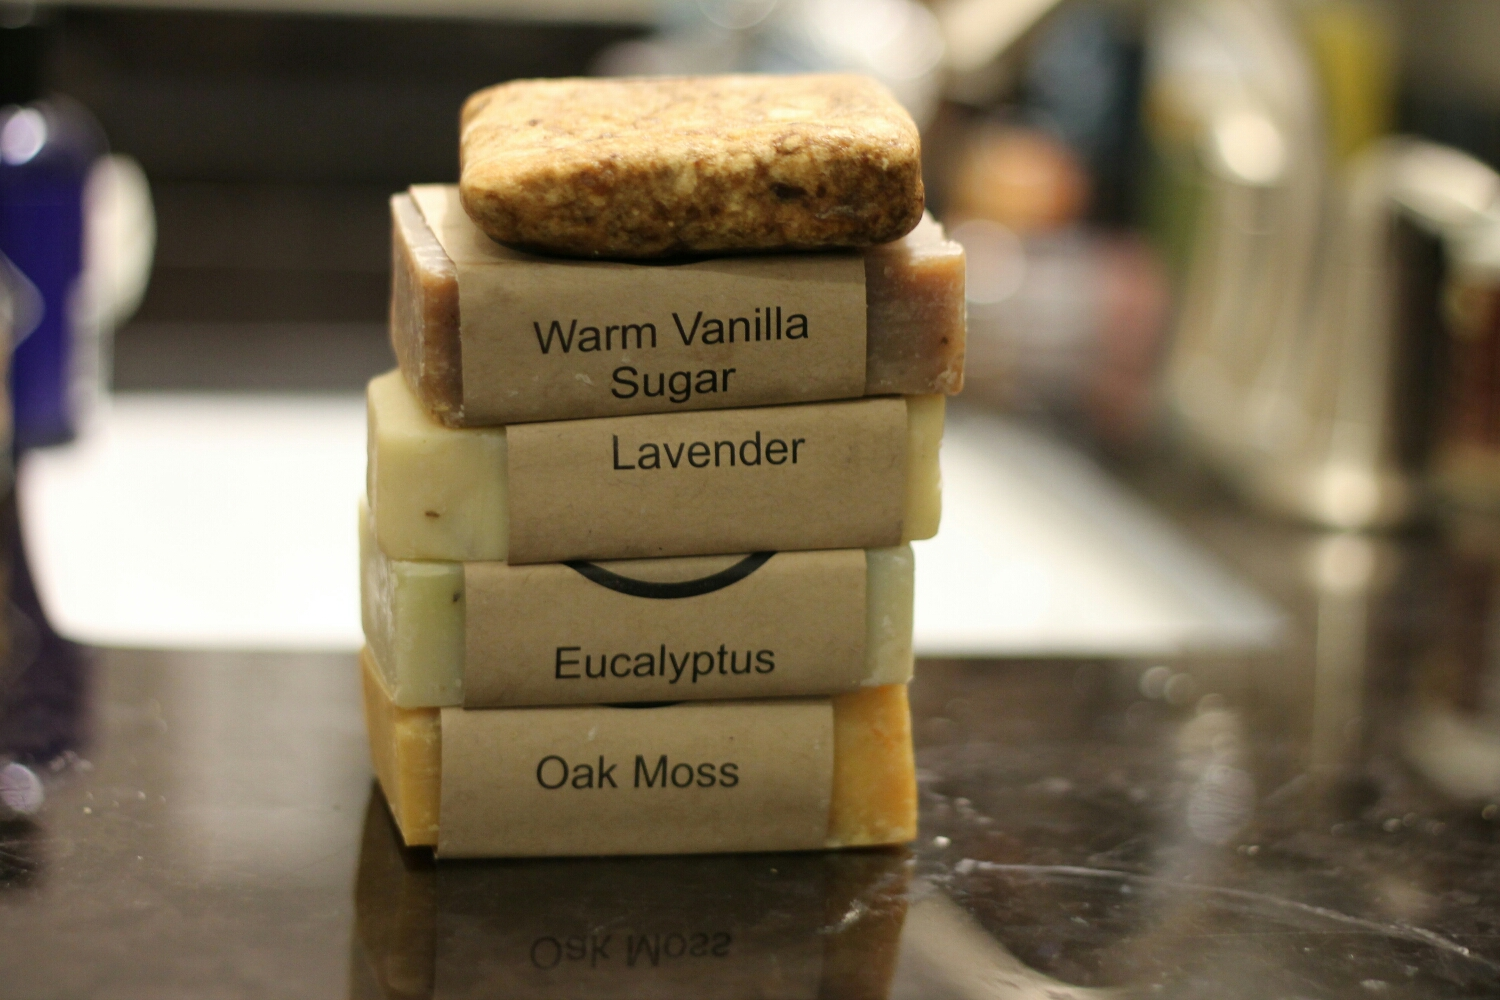 Top to bottom: Black African, Warm Vanilla Sugar, Lavender, Eucalyptus, & Oak Moss soaps from Abundantly Aromatic